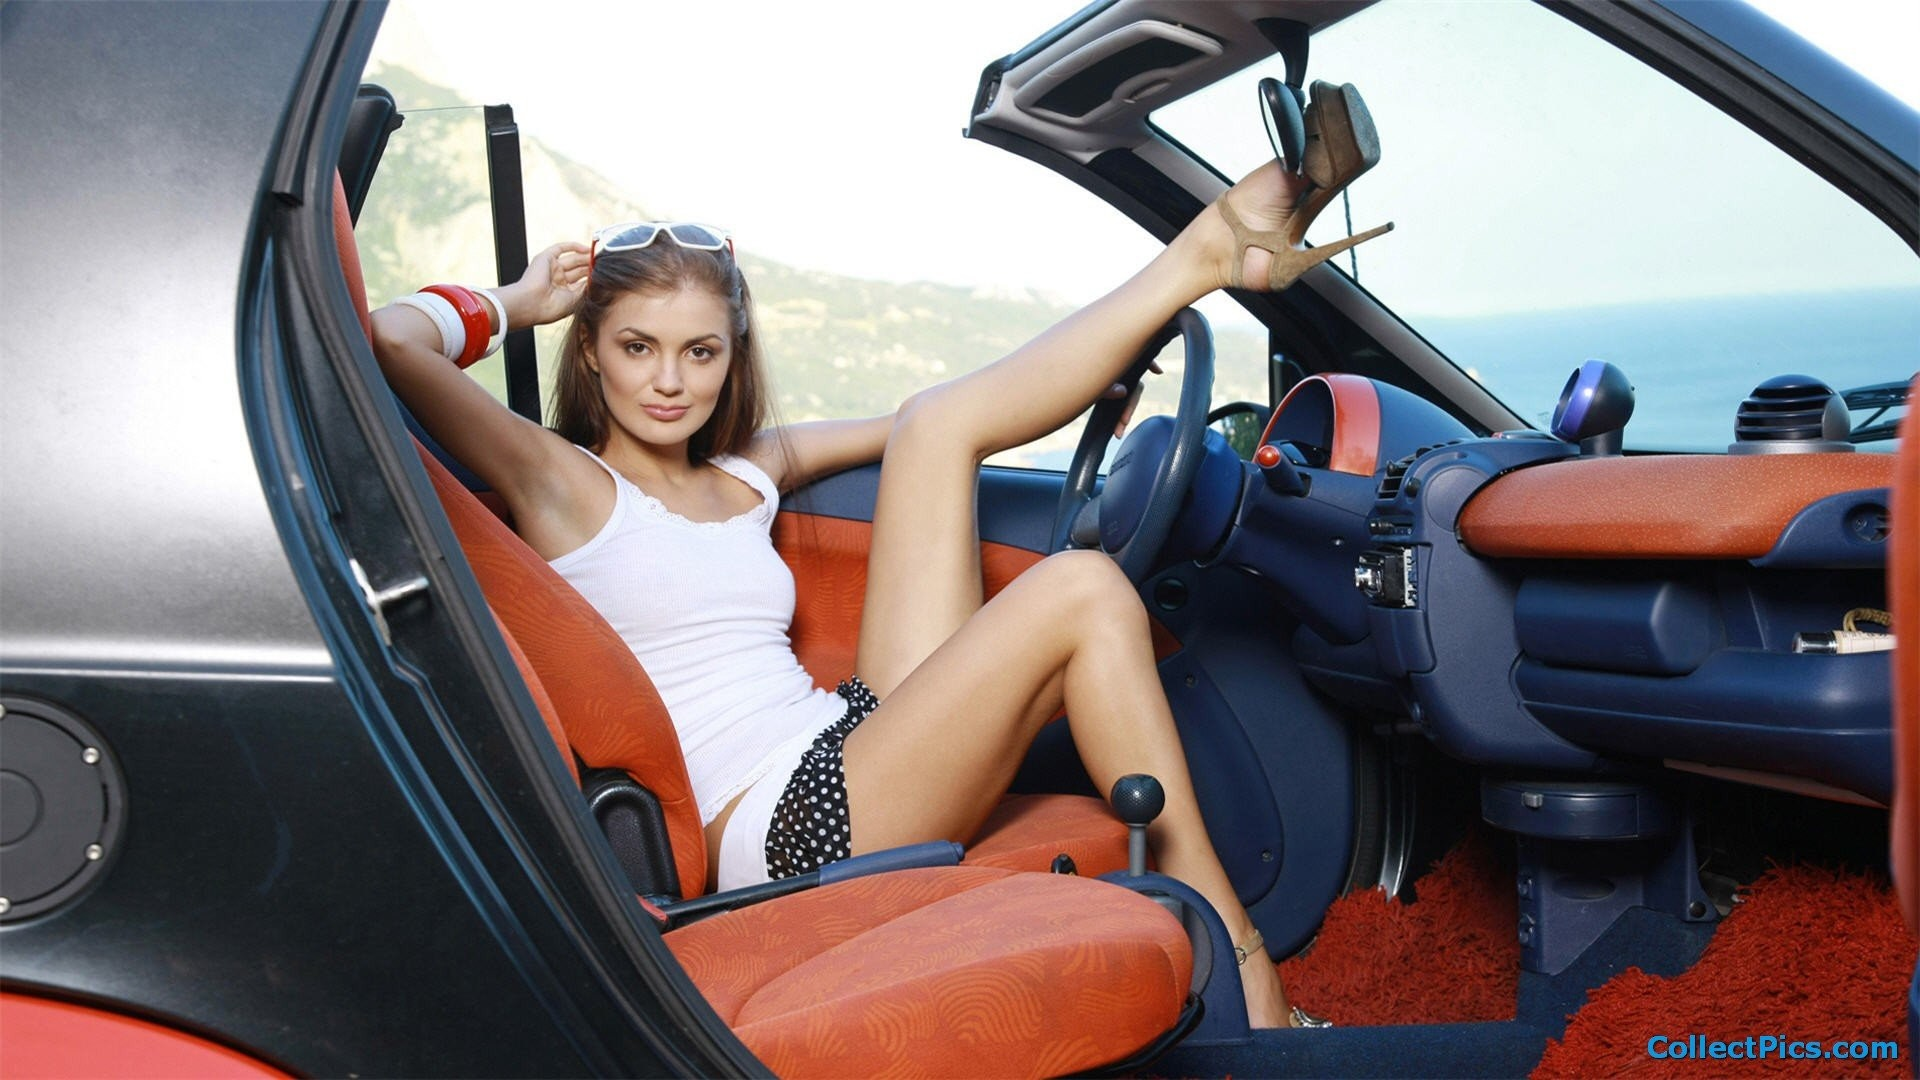 Chicks And Cars Wallpaper